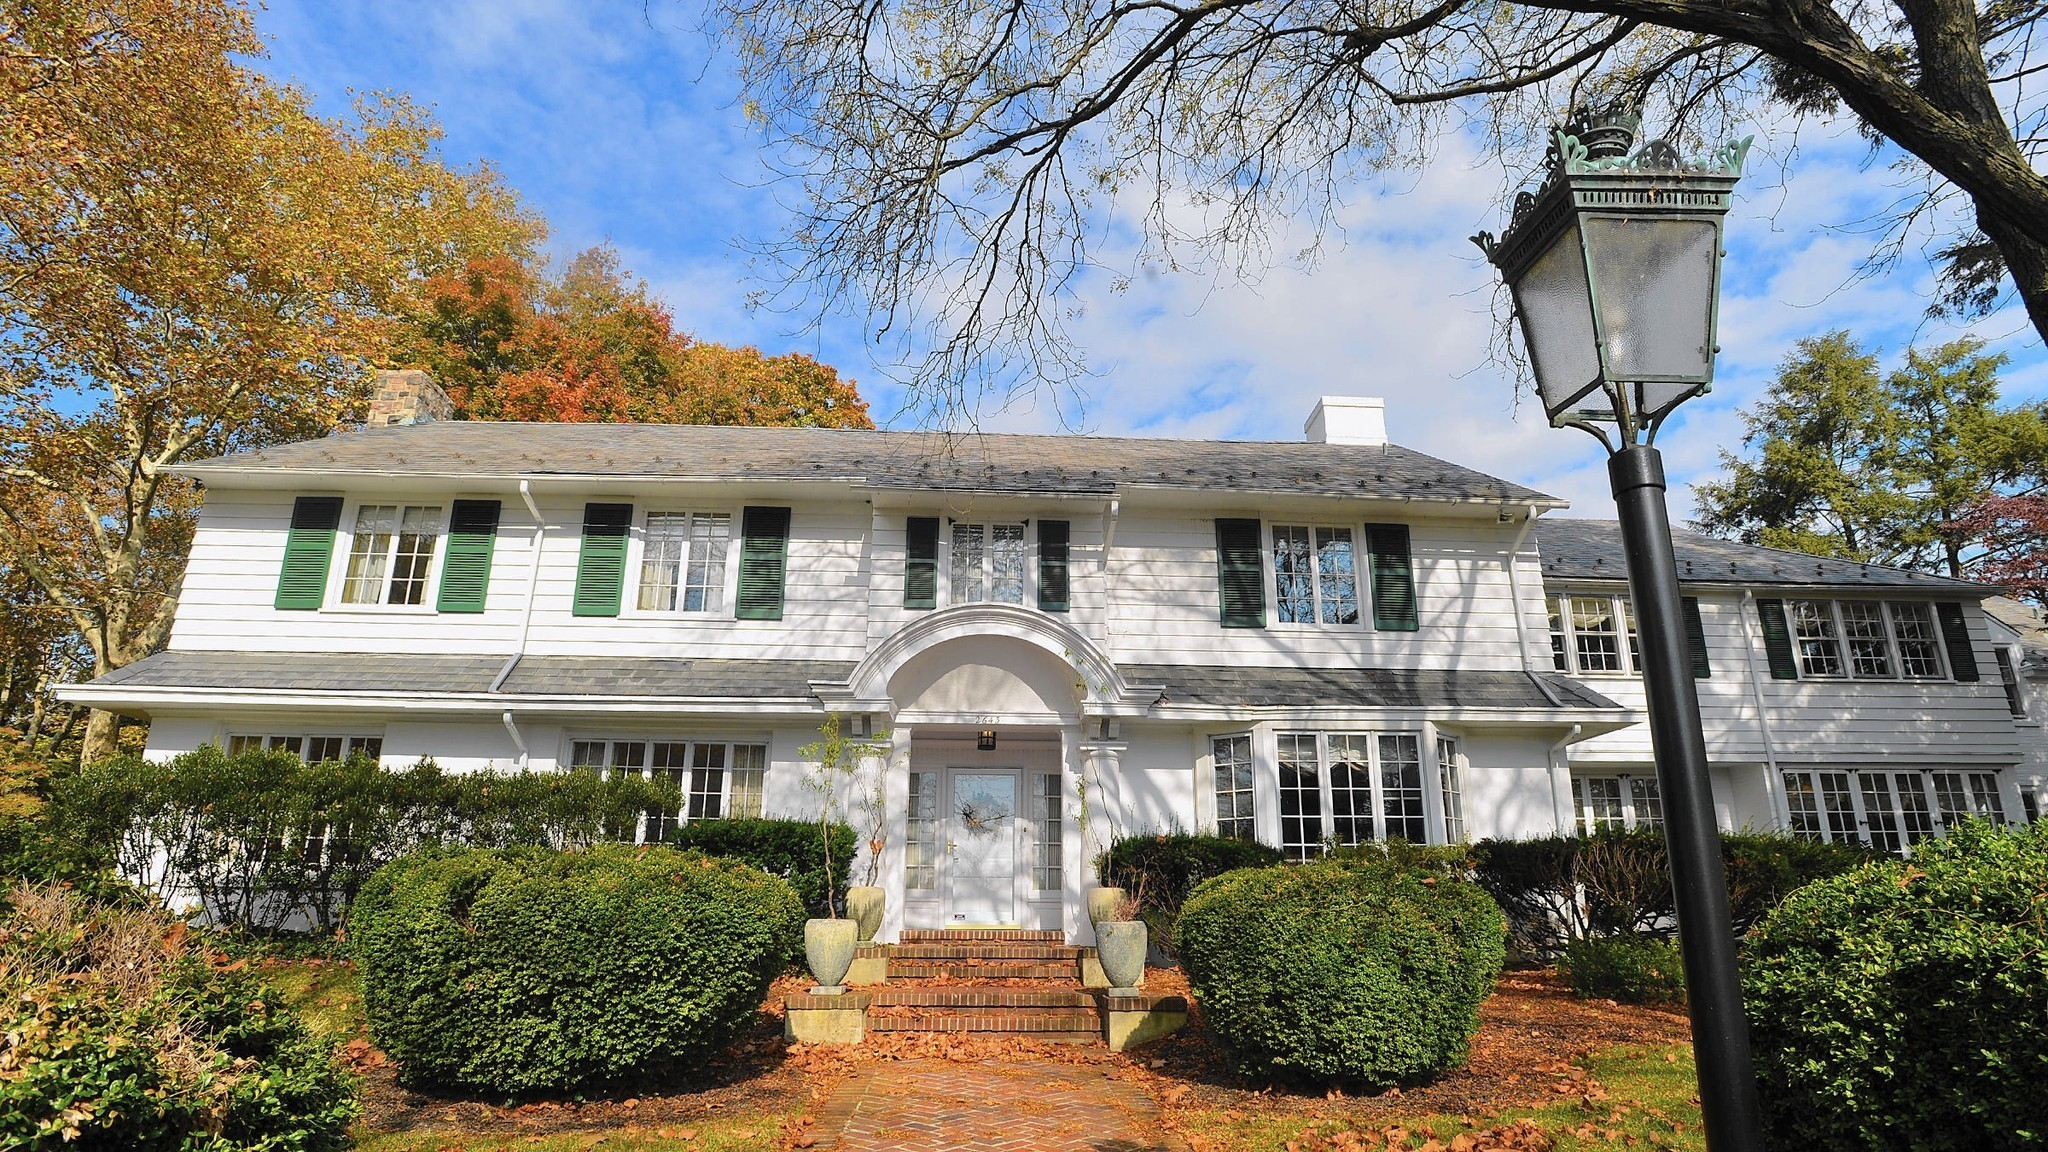 House That Max Hess Built Up For Sale In West Allentown